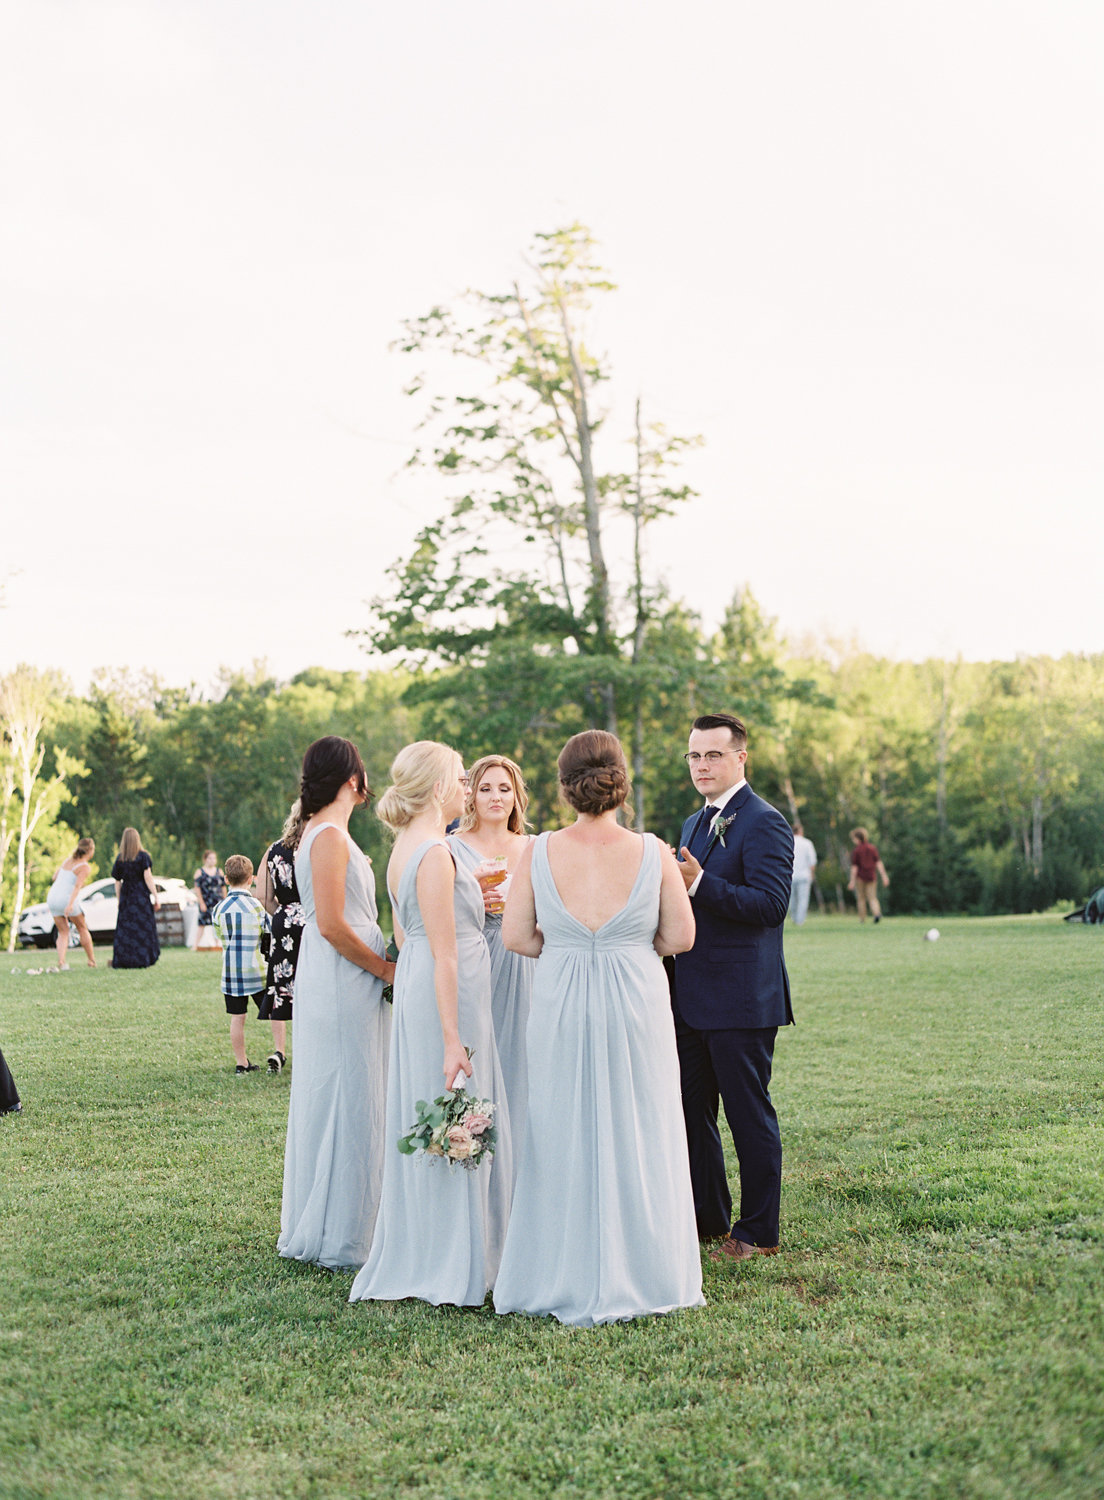 Jacqueline Anne Photography - Nova Scotia Backyard Wedding-51